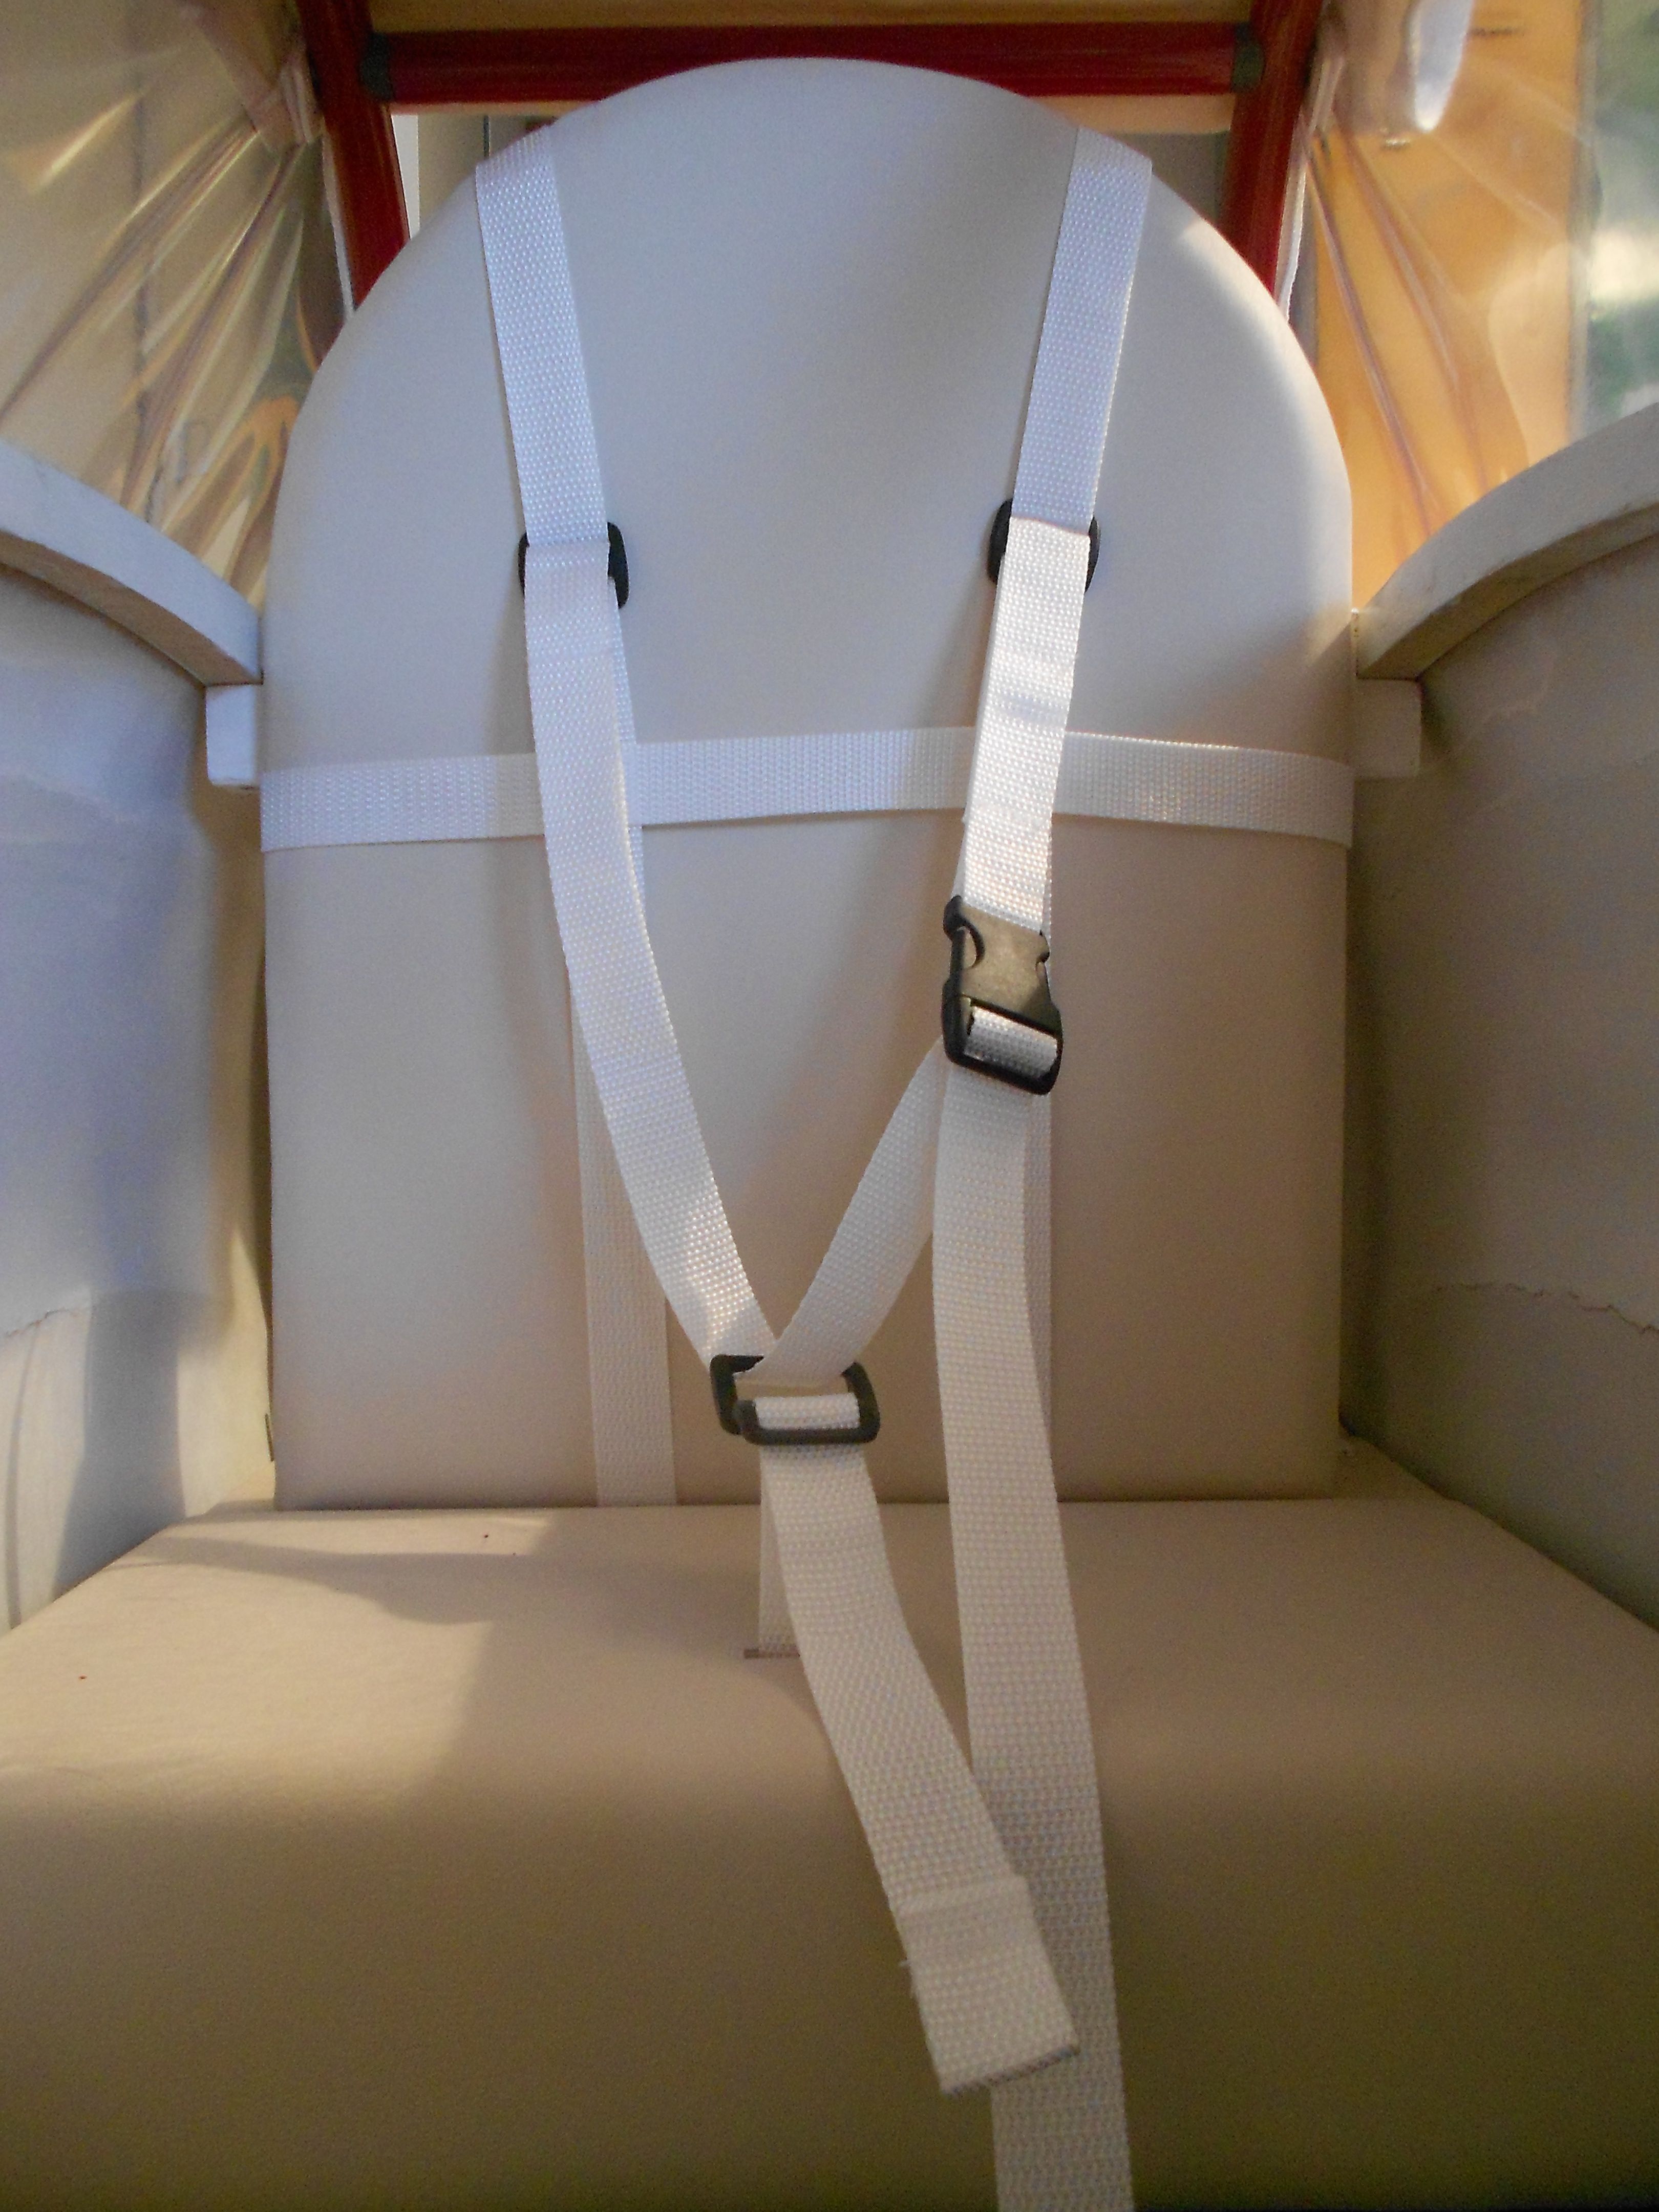 Picture of Seating and Safety Belt